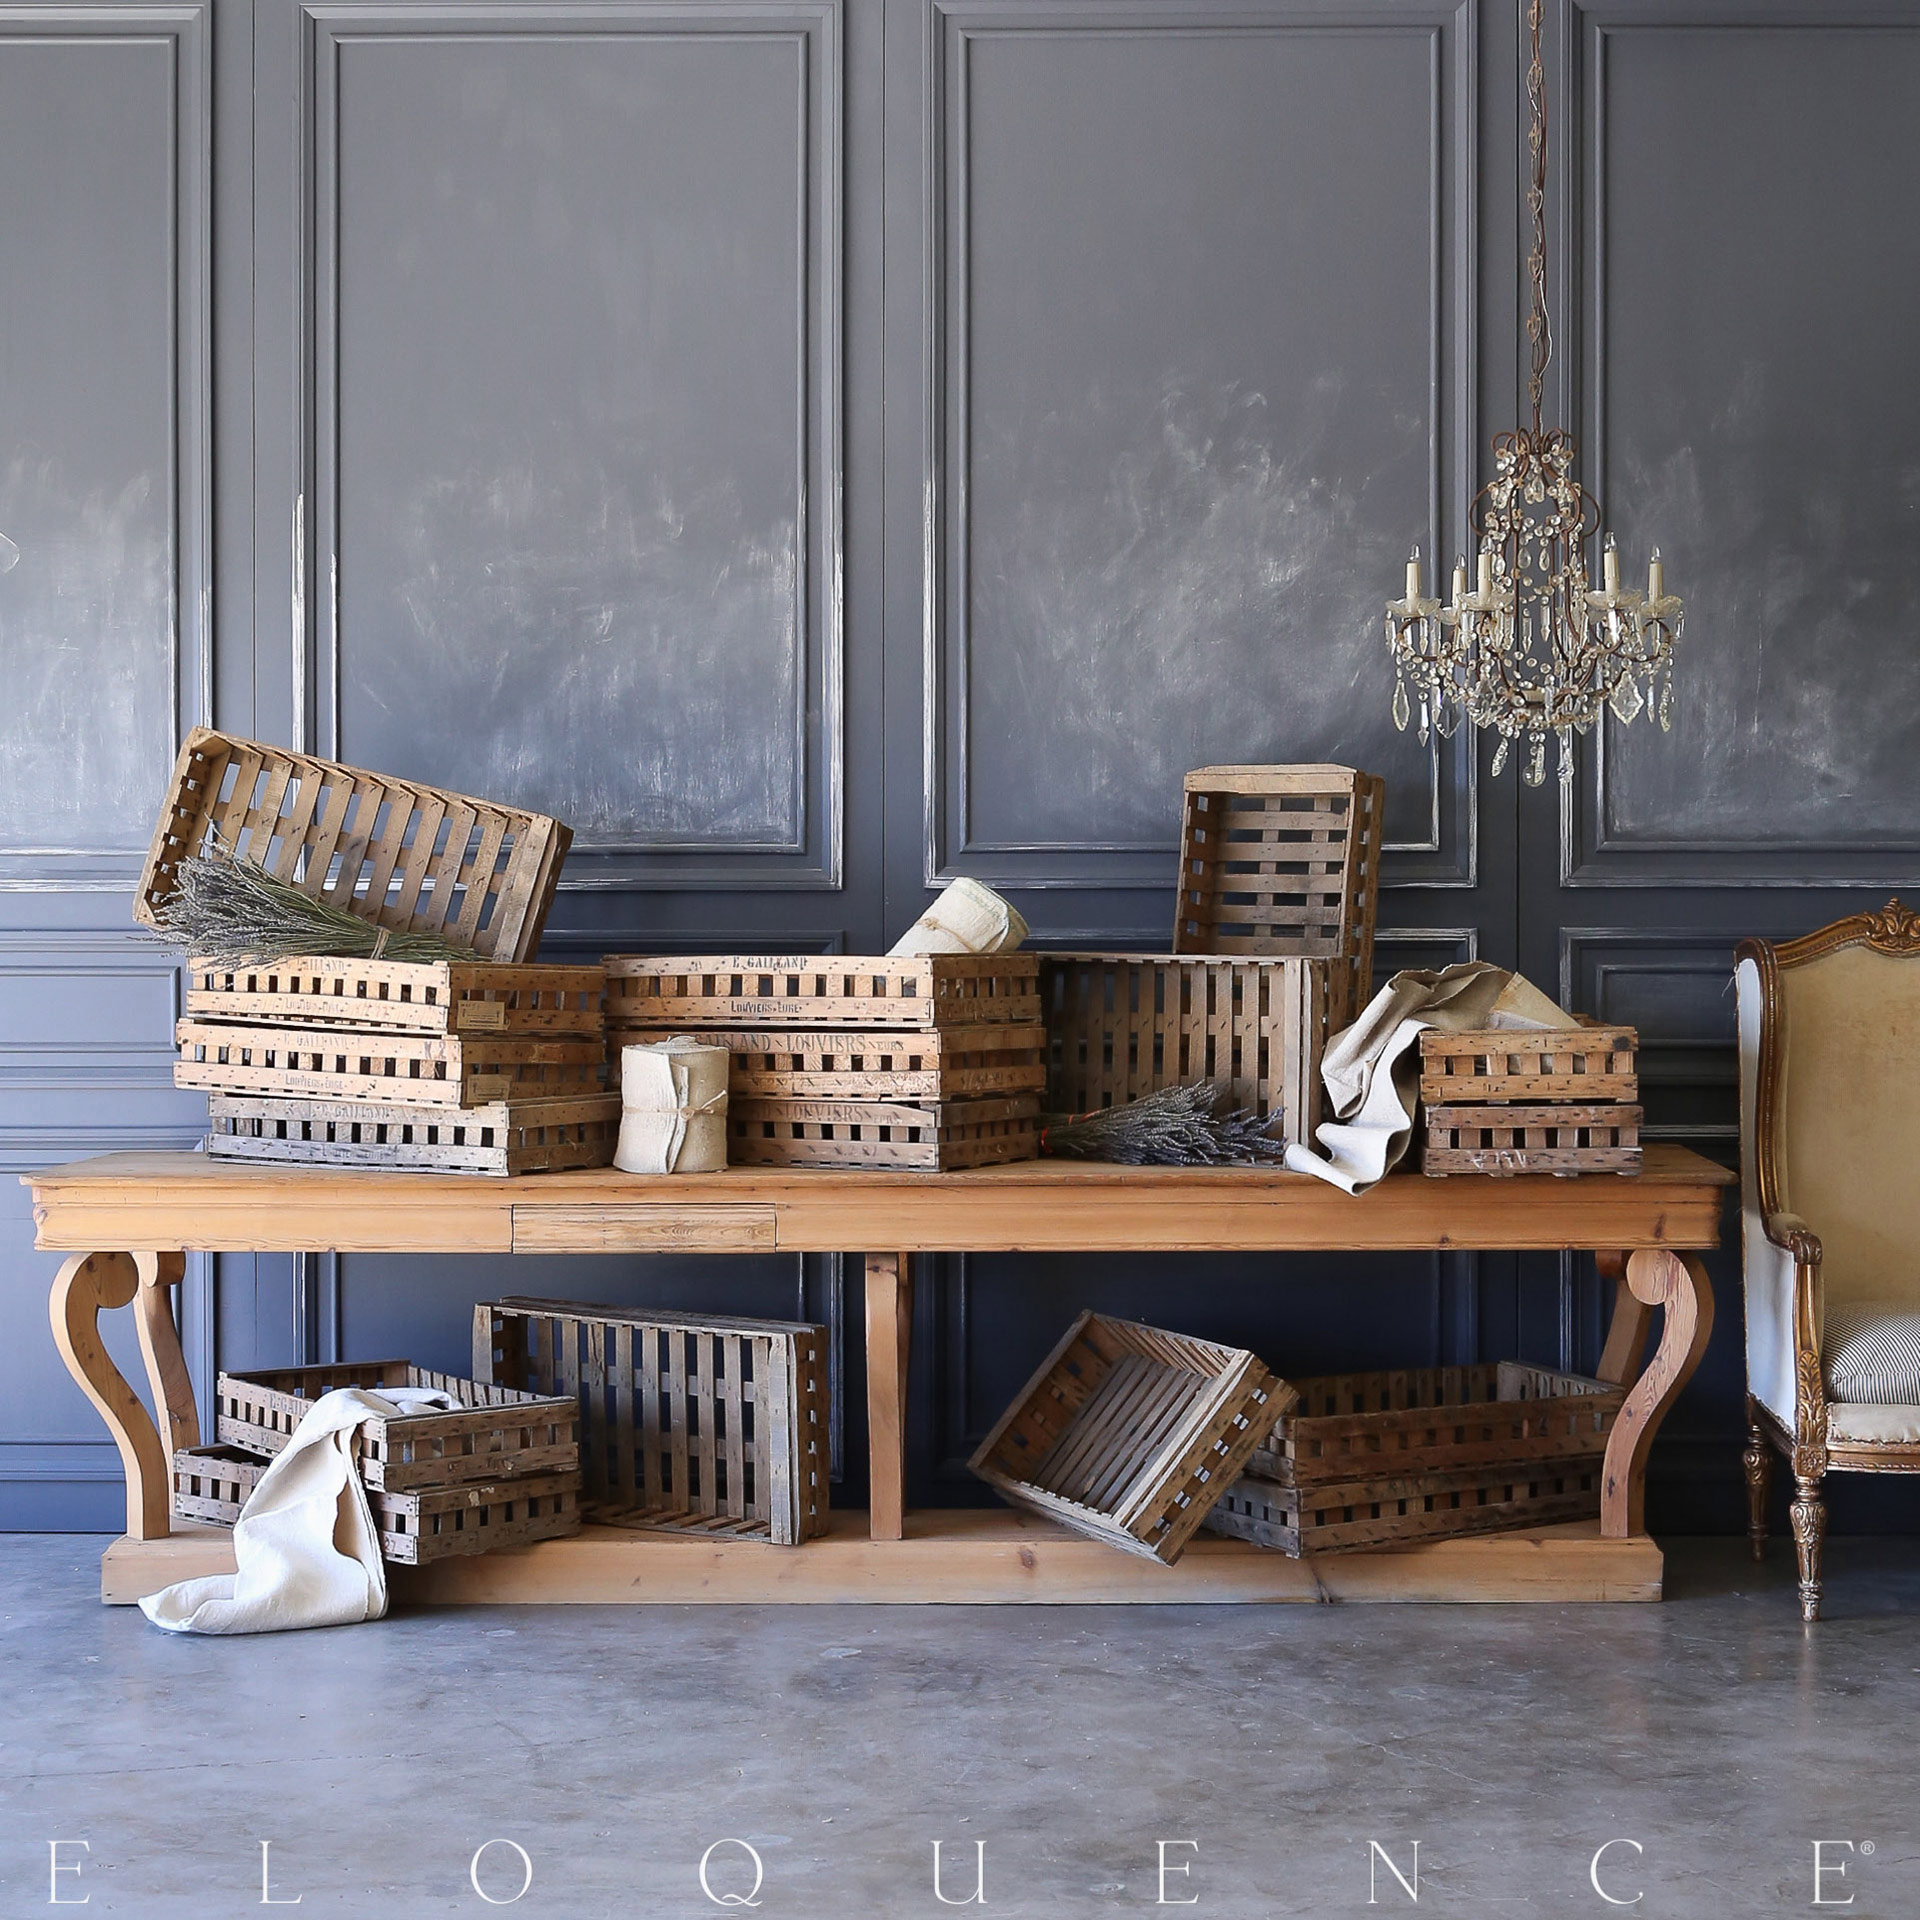 Eloquence® Antique Parisian Market Crates: 1900